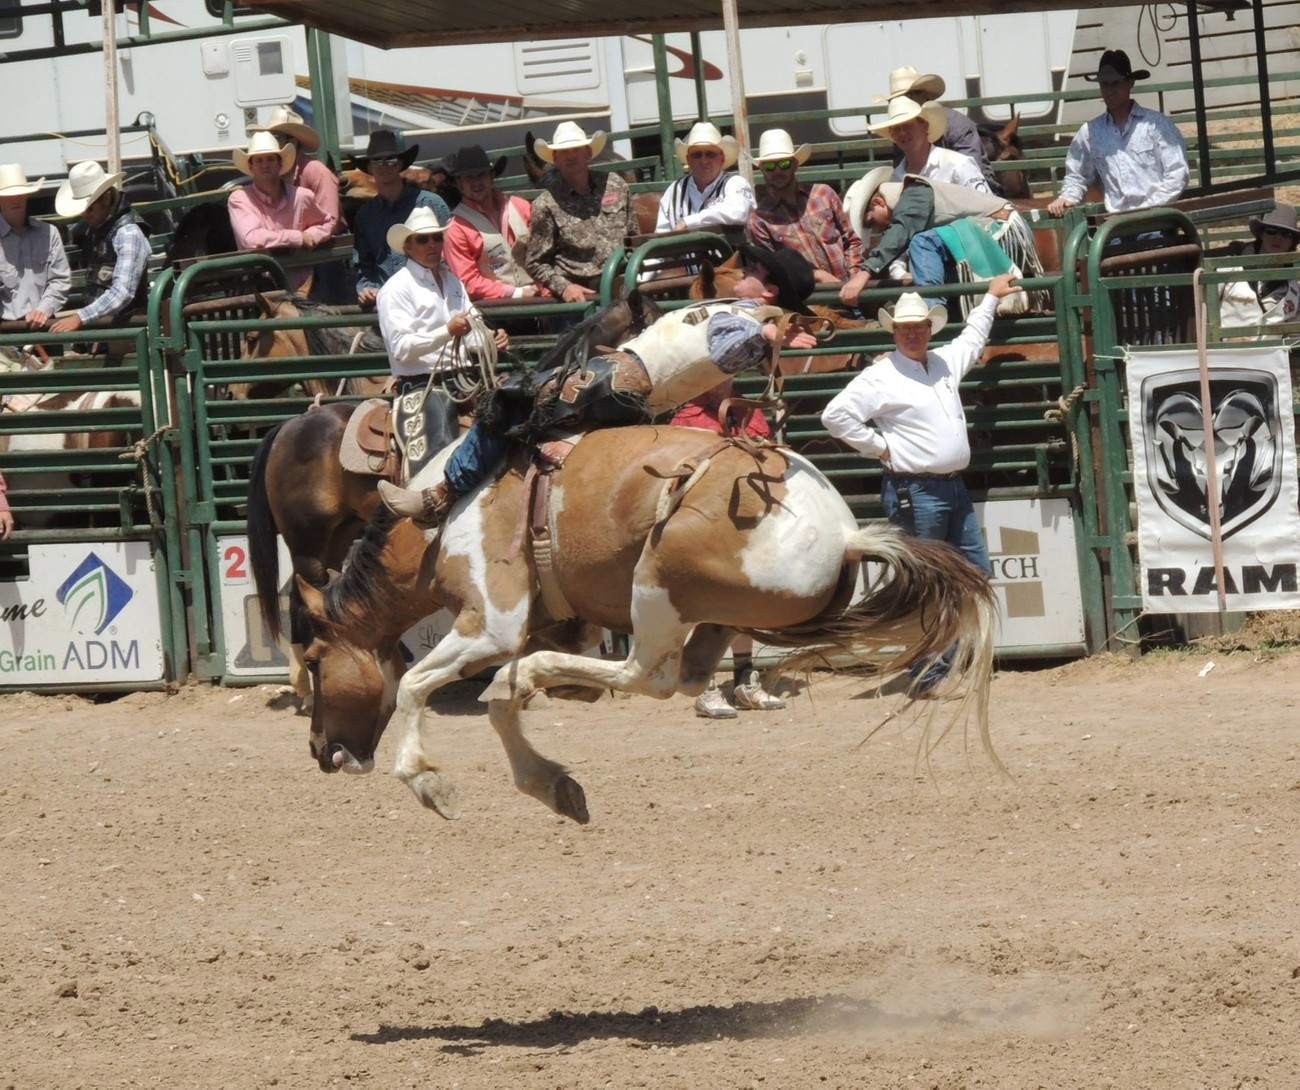 Awesome shot of a bronc rider in action!